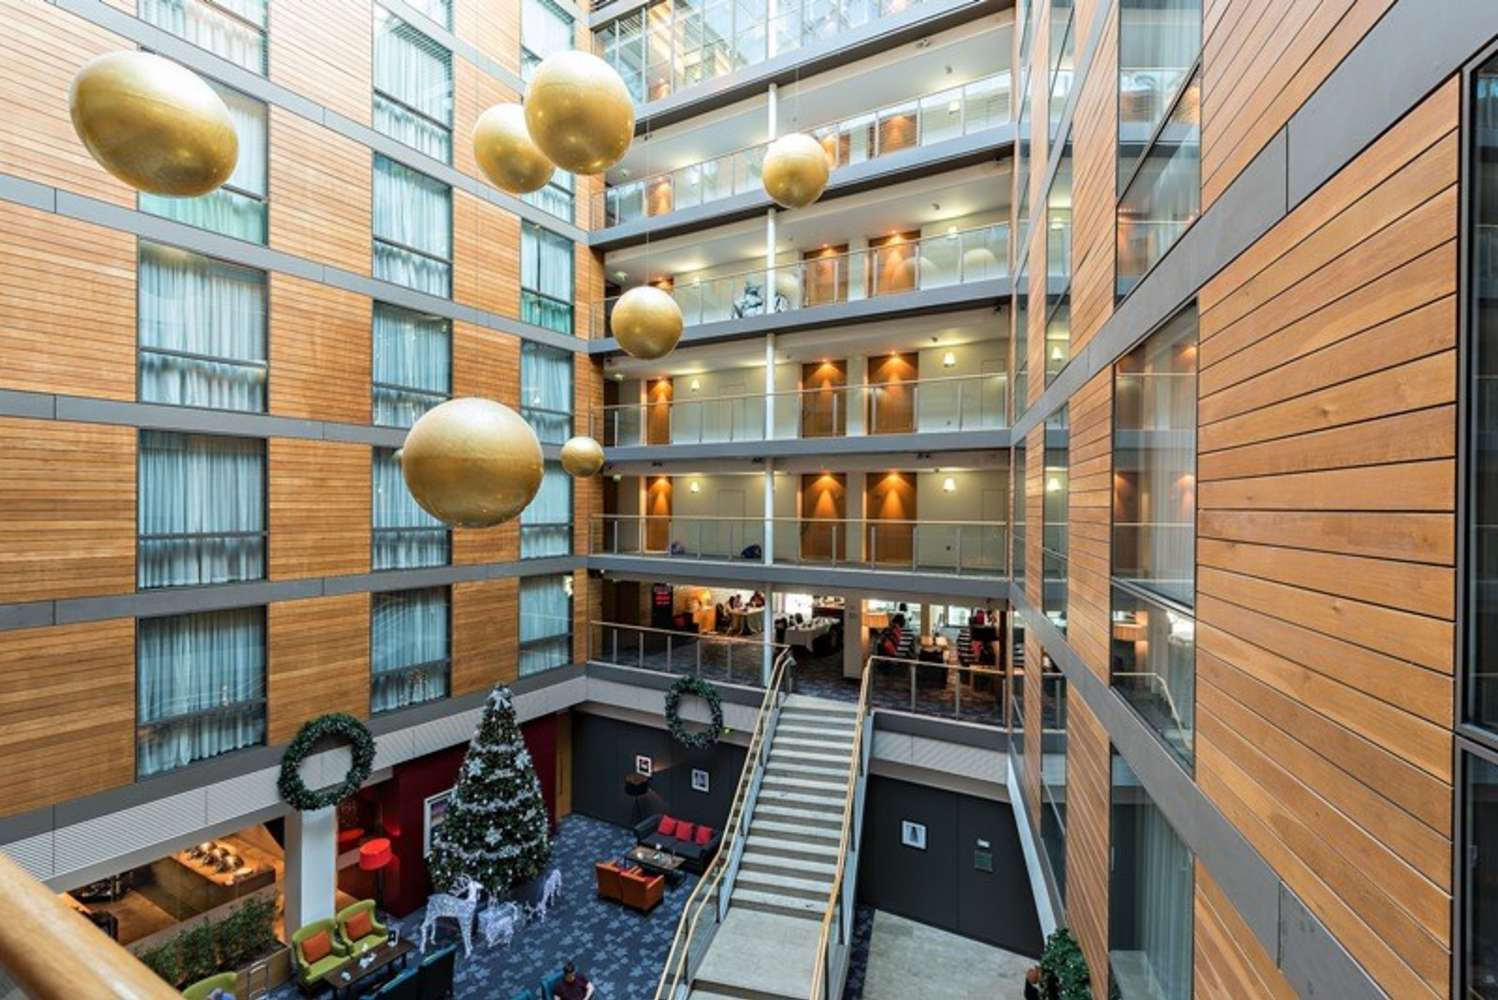 Hotels & hospitality Cork, T12 RD6E - The Clarion Hotel